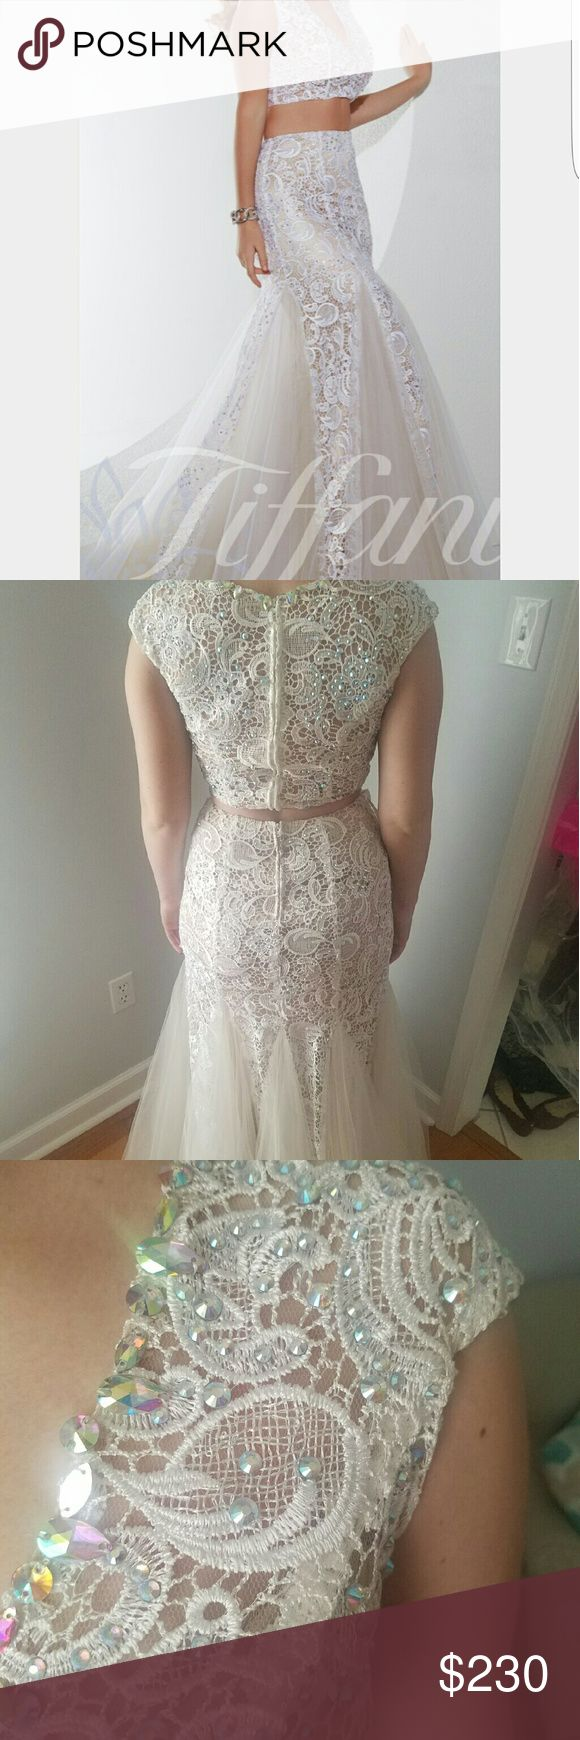 Stunning Prom dress White two piece v-neck  prom dress with a tan liner underneath. Tiffany Design  Dresses Prom